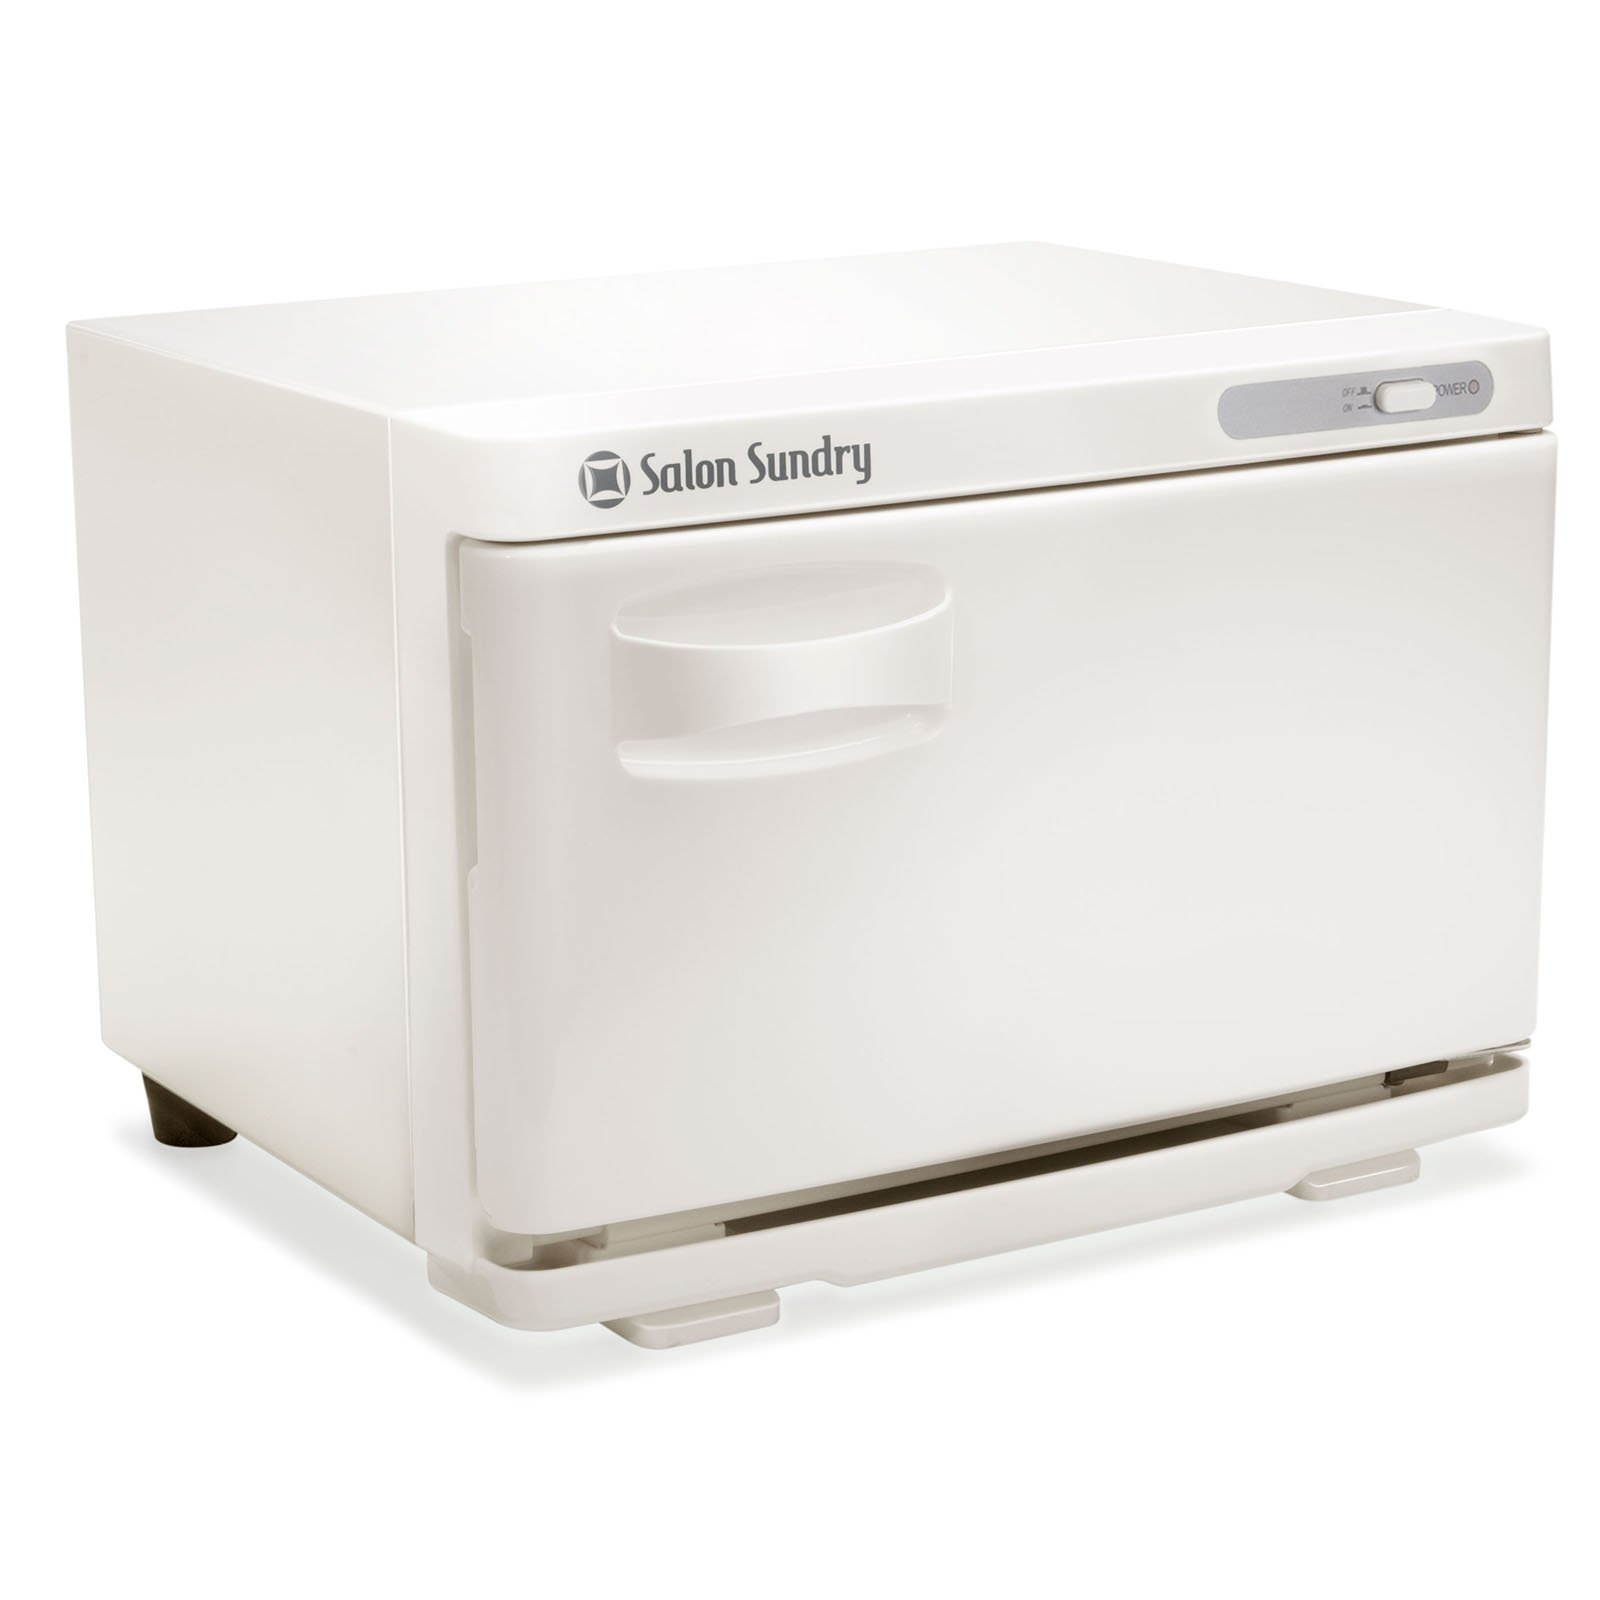 Salon Sundry Professional Hot Towel Warmer Cabinet - Facial Spa and Salon Equipment - White